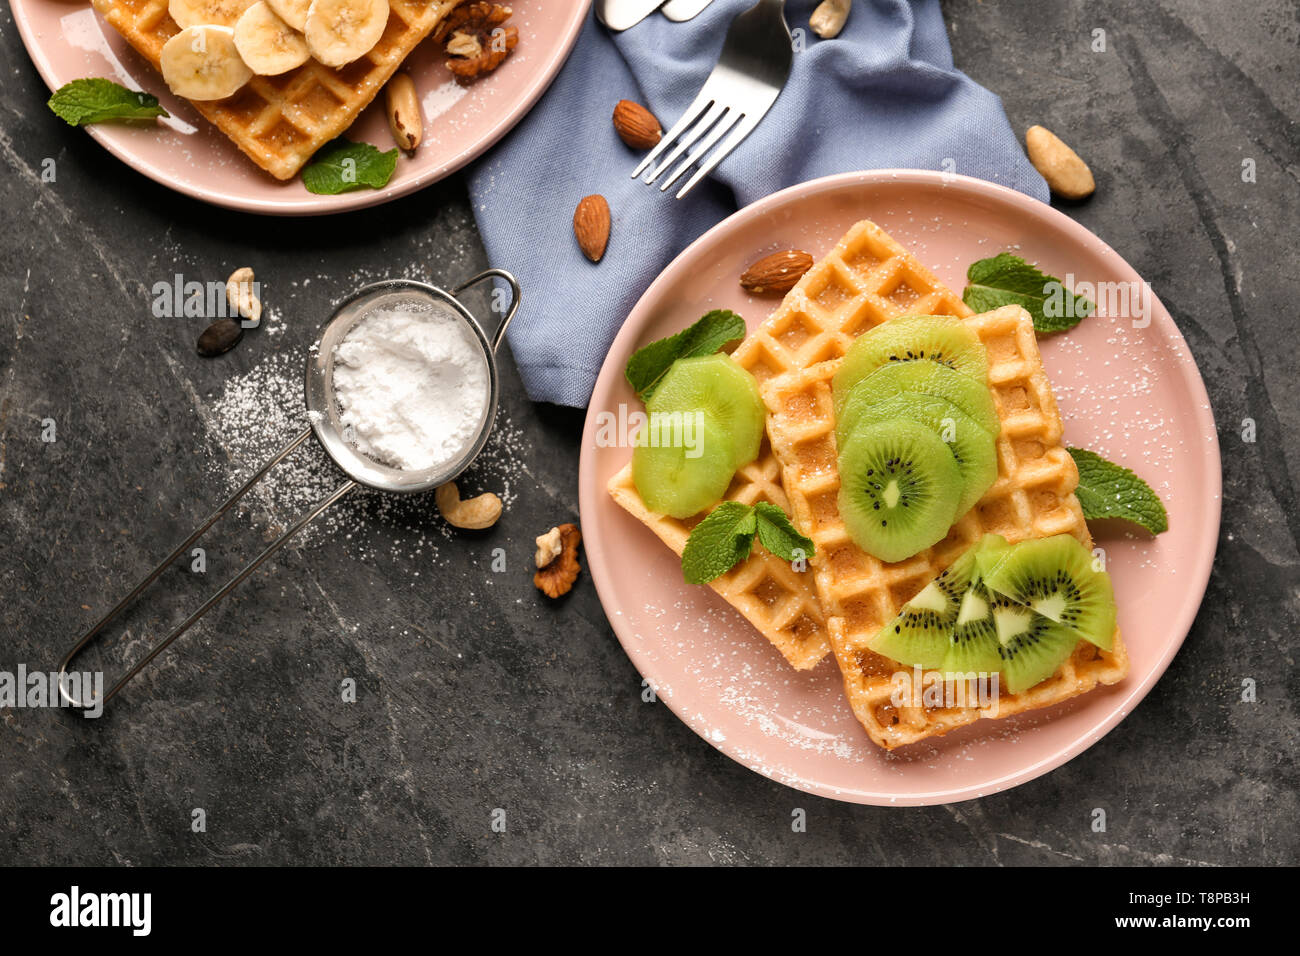 Delicious waffles with kiwi slices on dark table - Stock Image